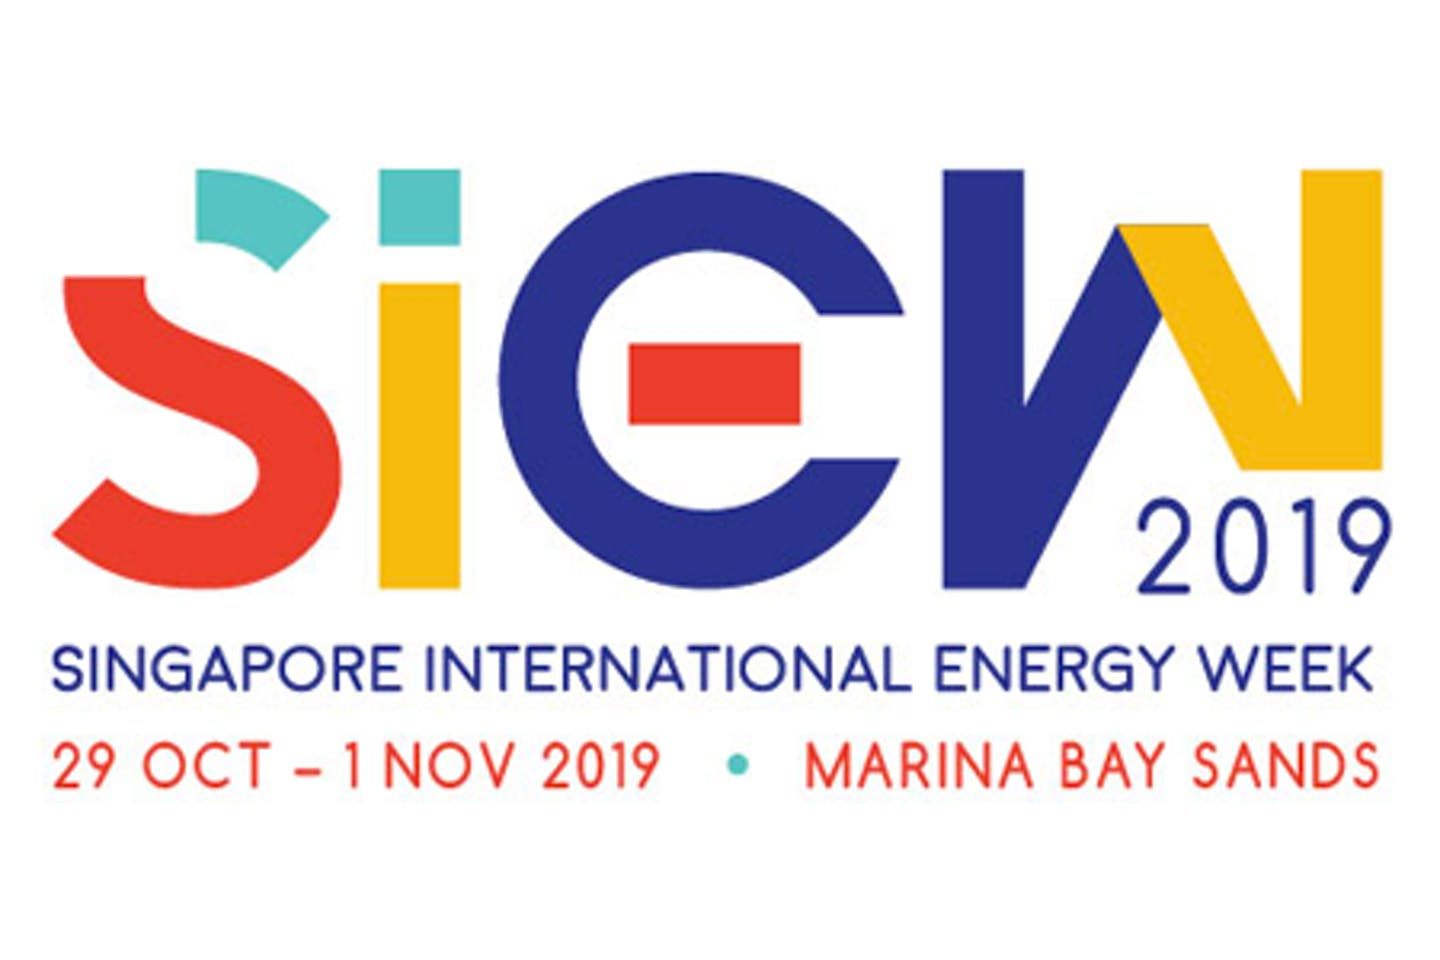 Registration Opens for 12th Singapore International Energy Week